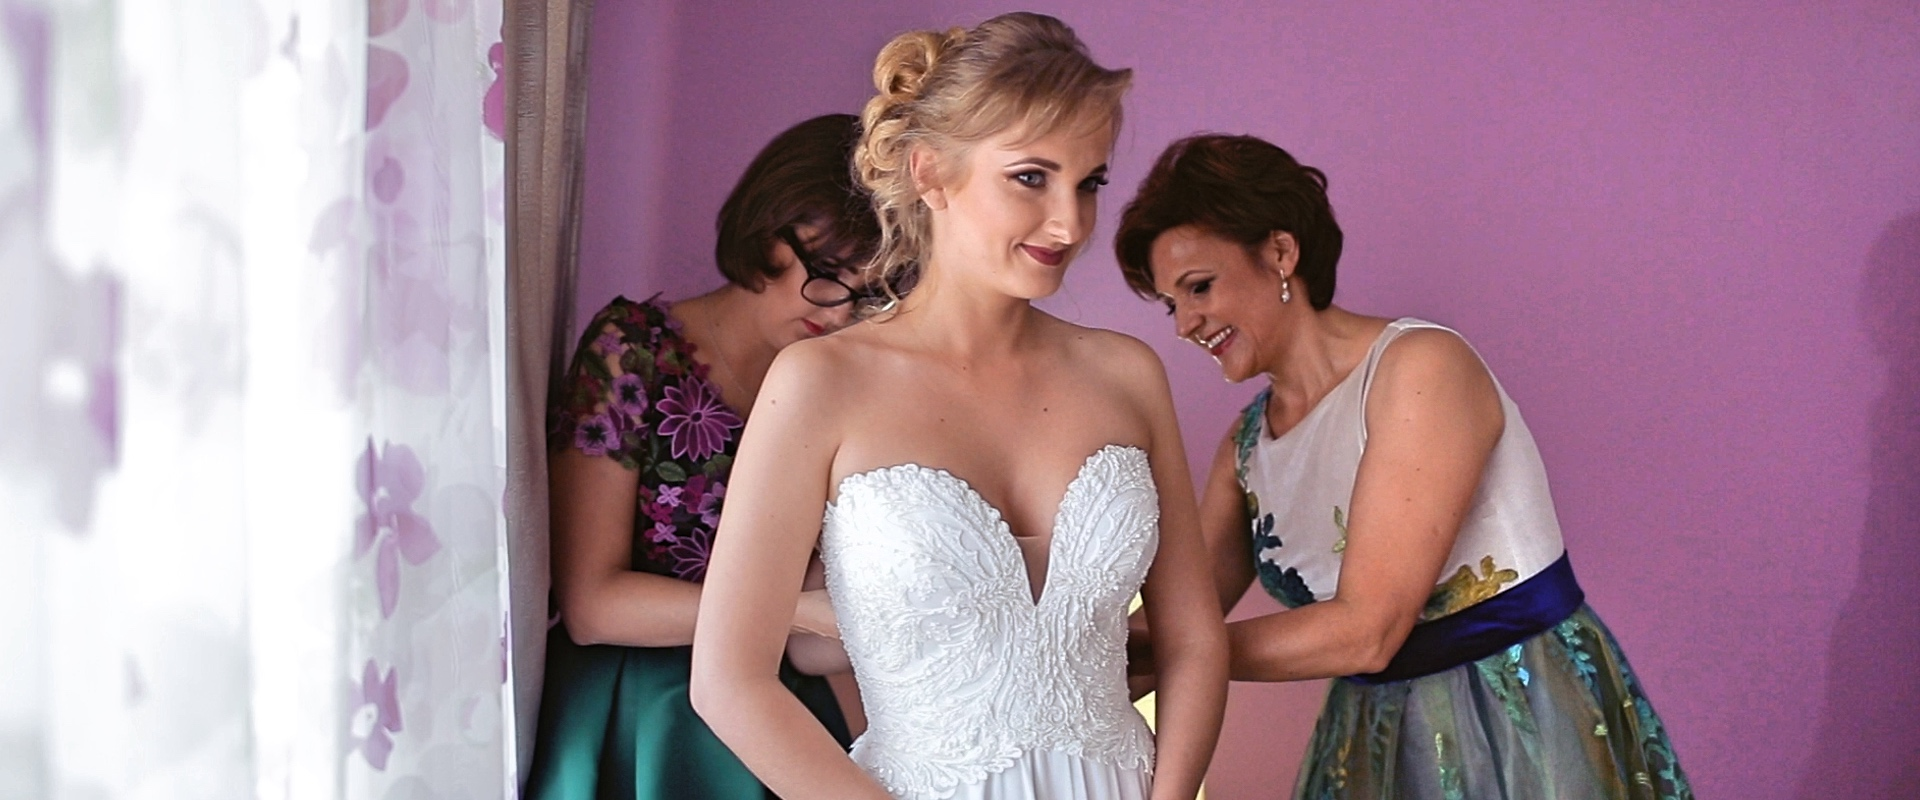 Bride getting ready, being helped by her mother